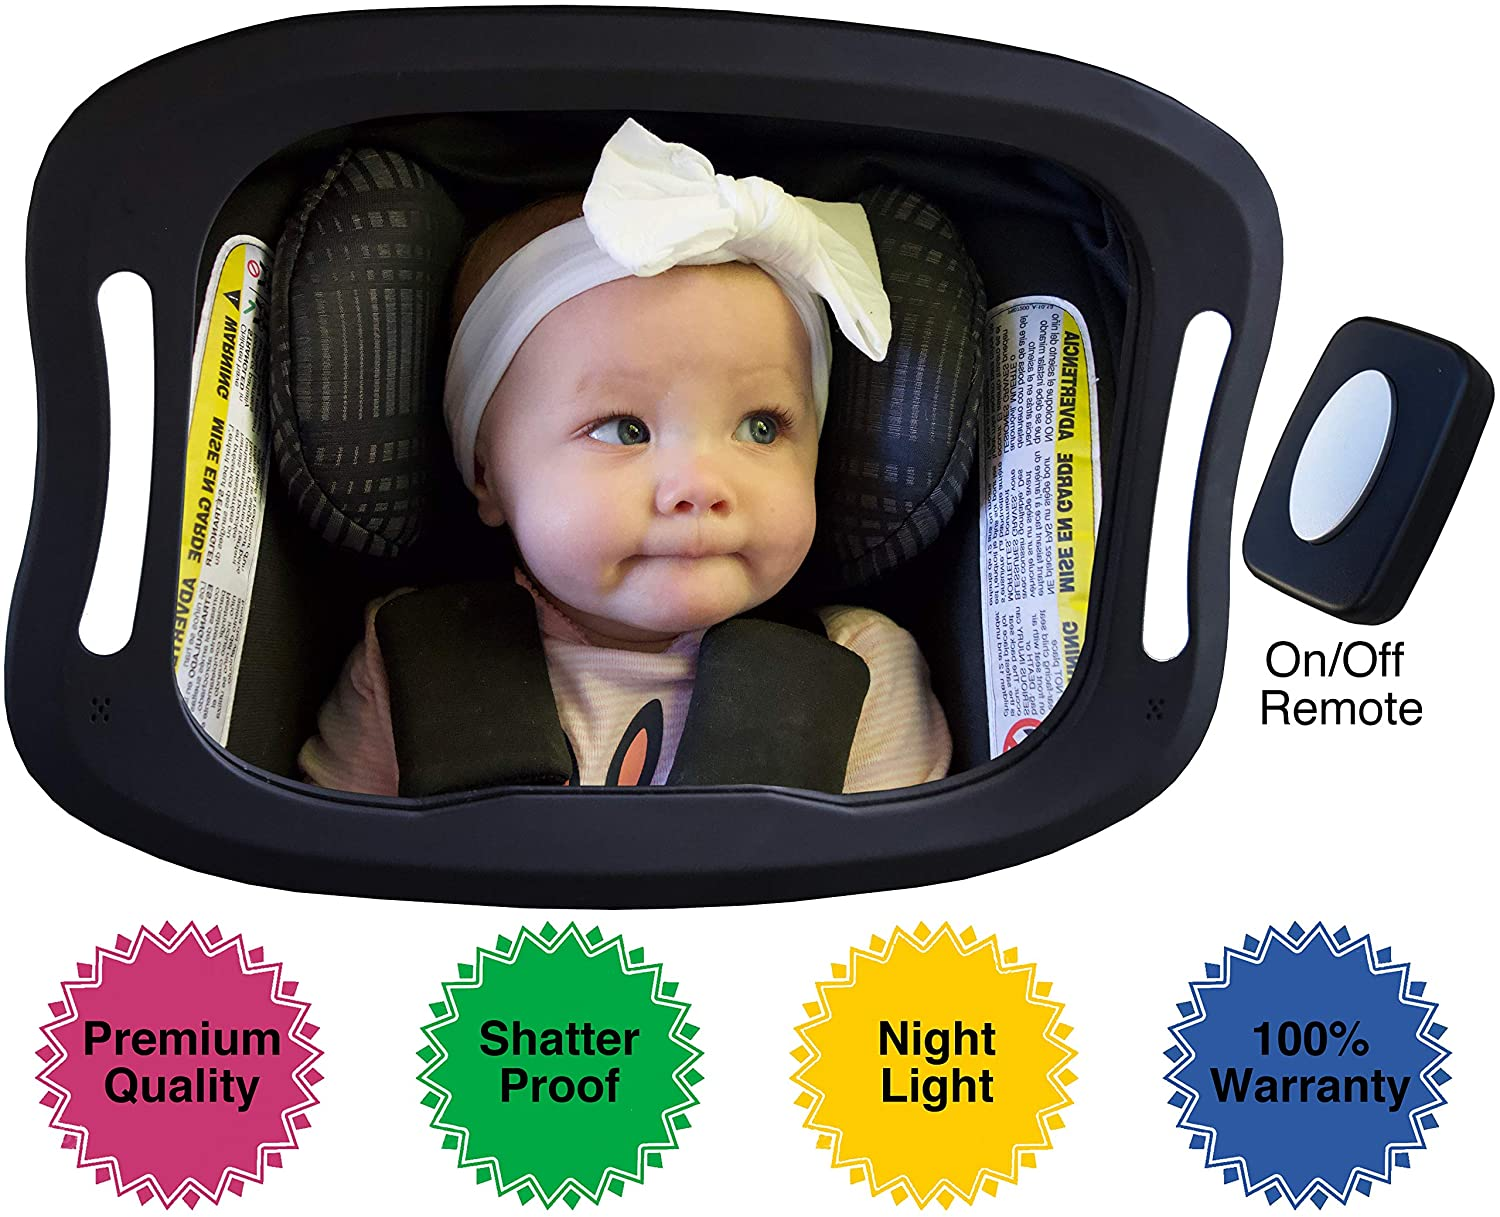 Baby Car Mirror with Light (for Driving at Night) & FOB Control - Best Baby Car Mirror With Light